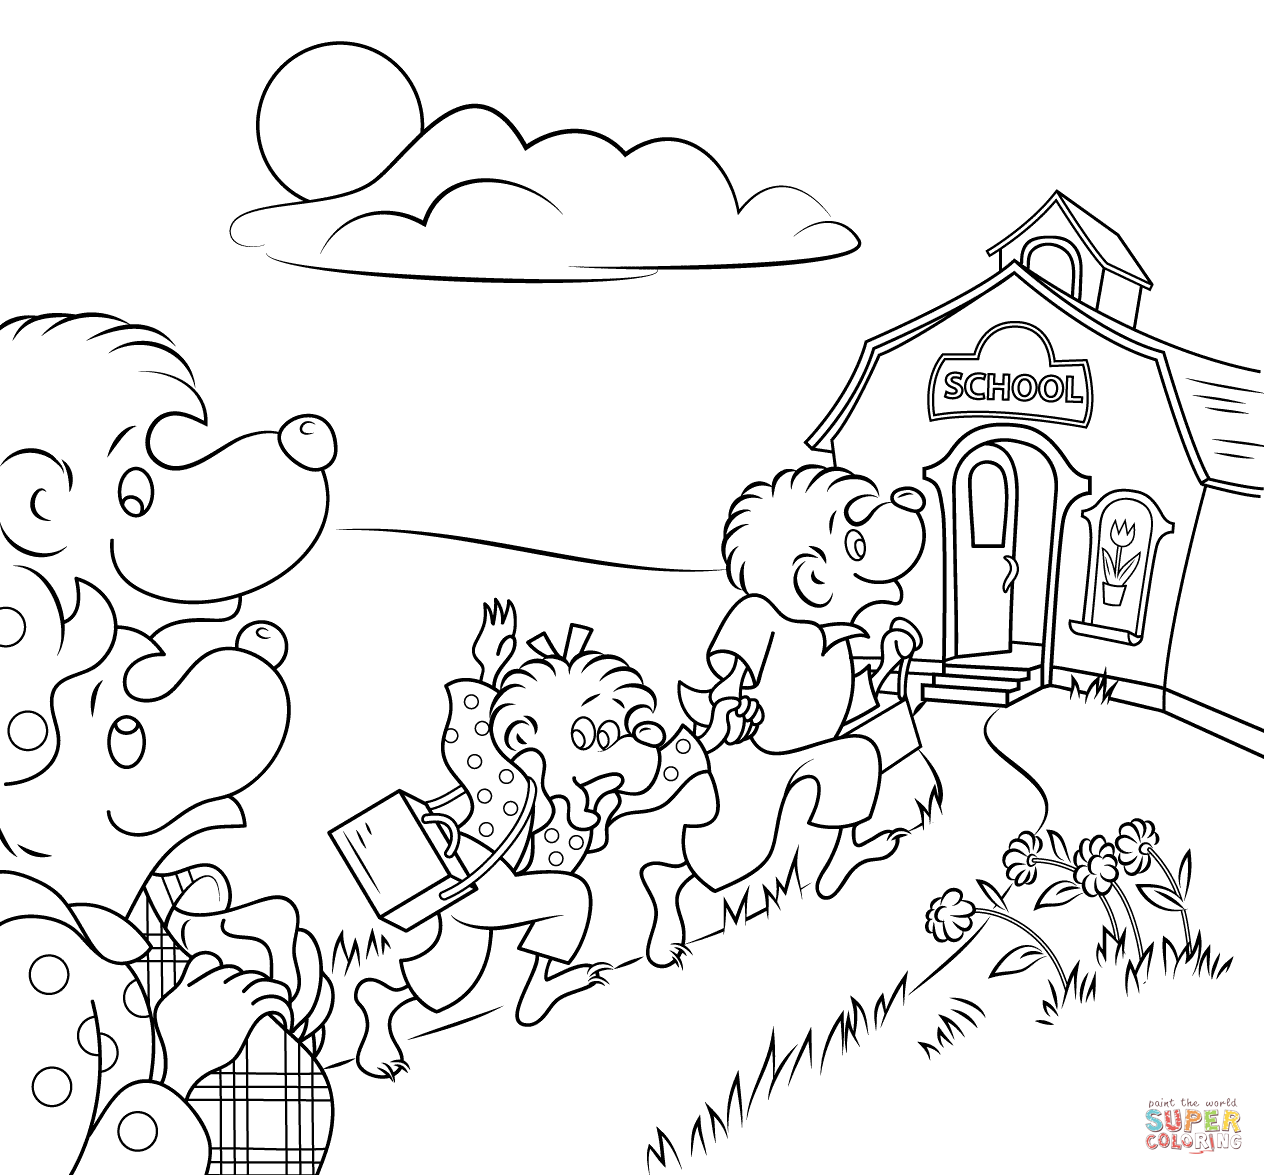 berenstain-bears-coloring-page-0020-q1